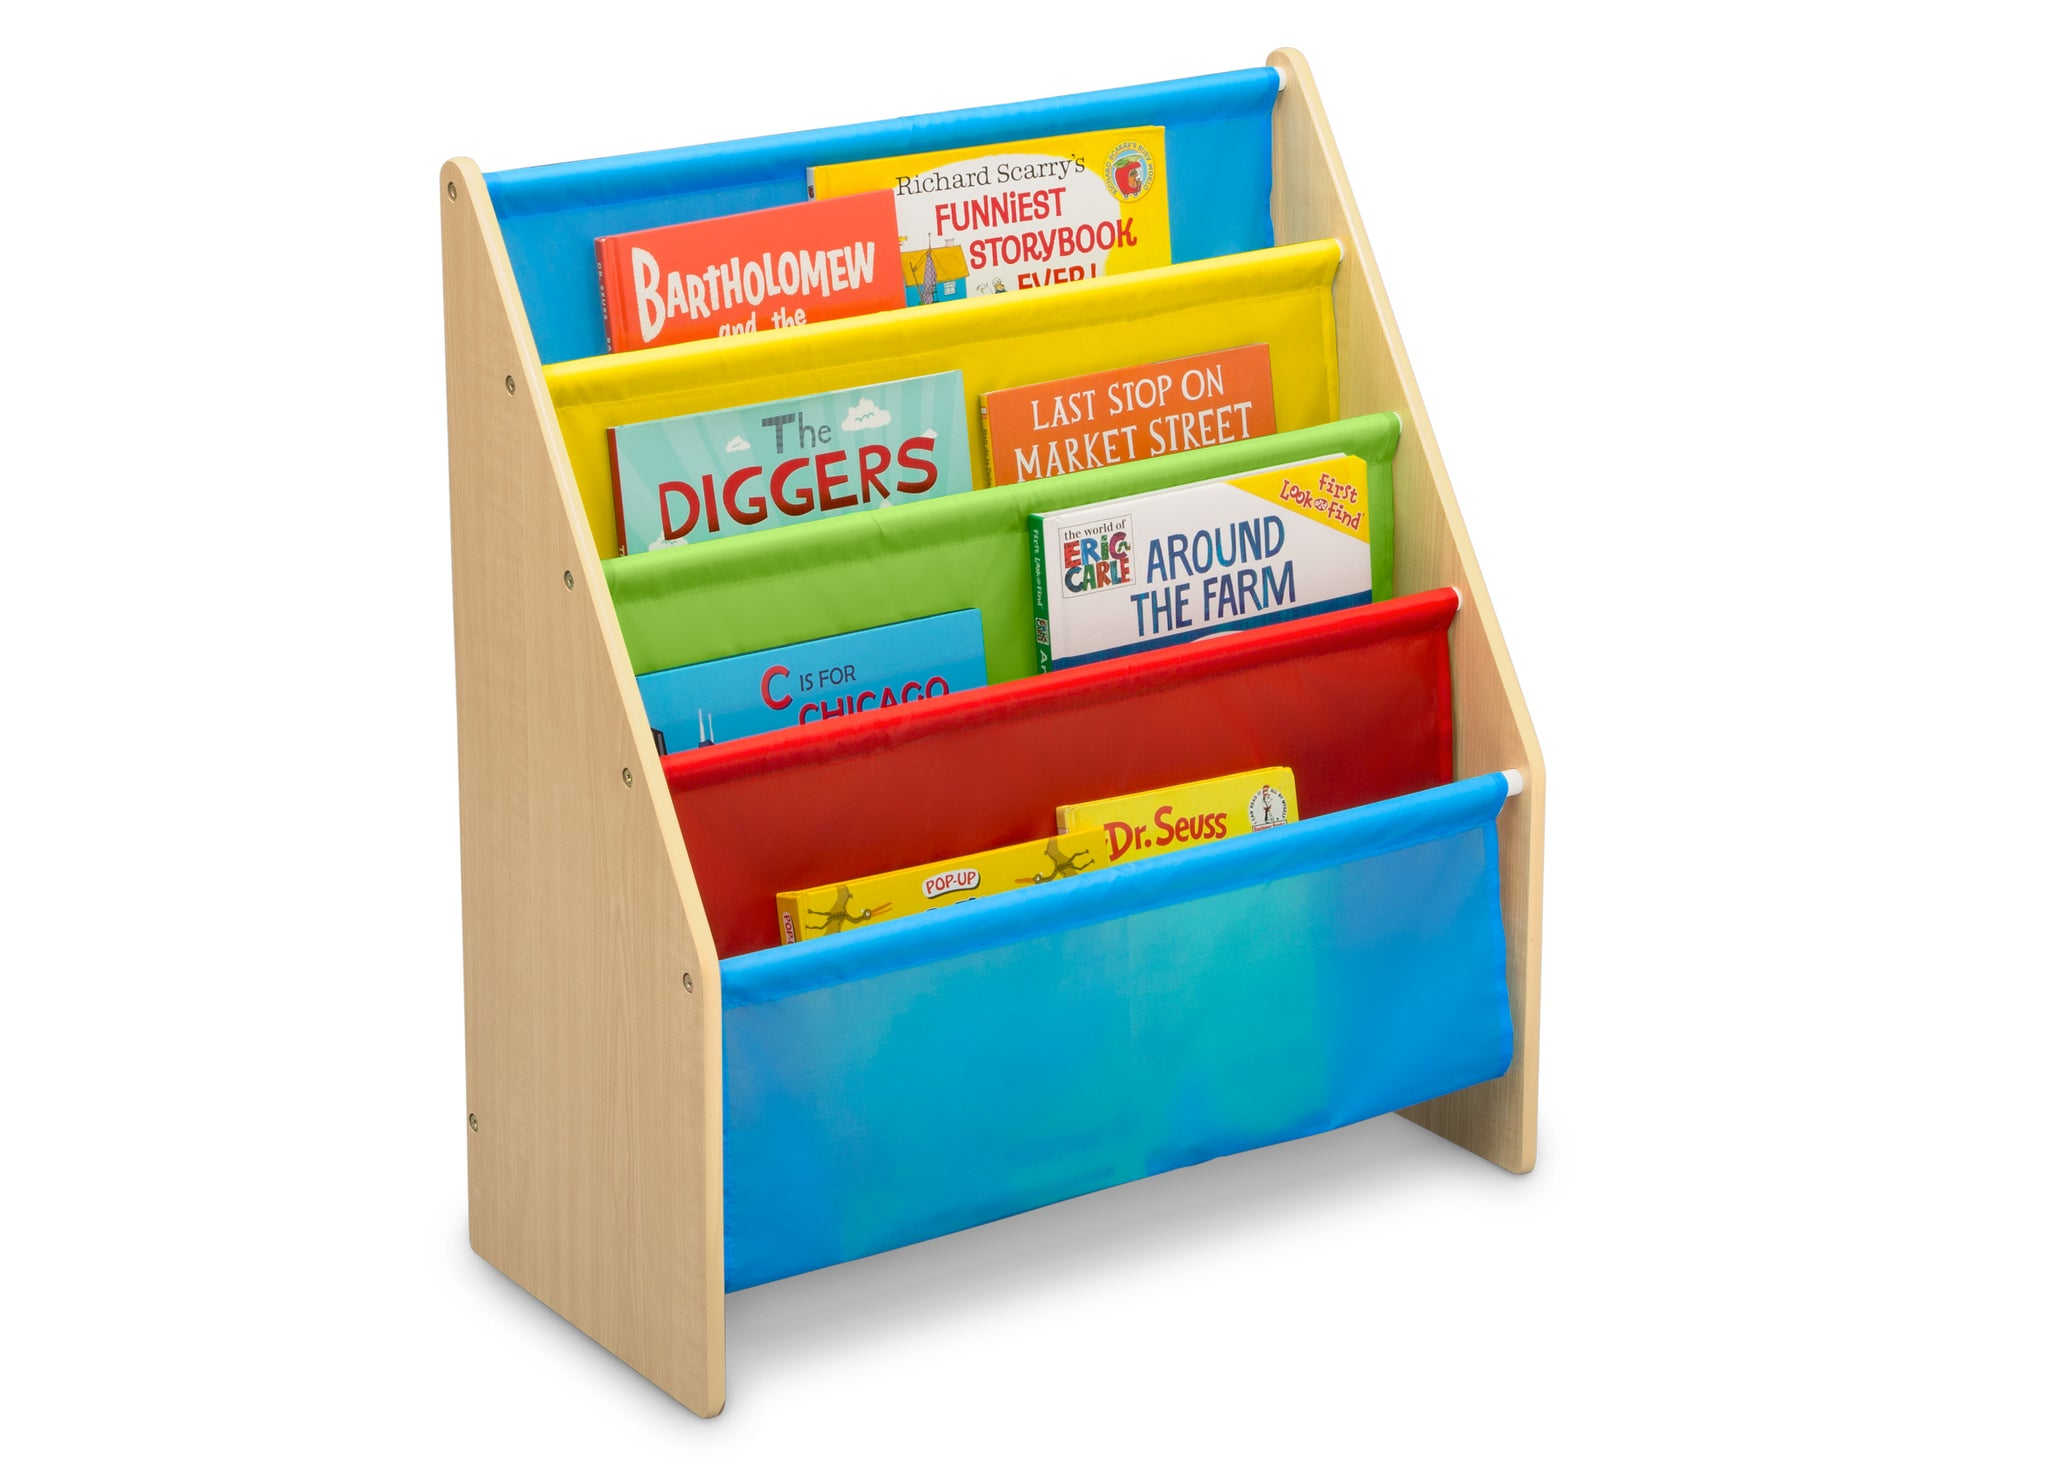 Delta Children Natural/Primary (1189) Sling Book Rack Bookshelf for Kids, Right Silo View with Props Natural and Primary Colors (1189)